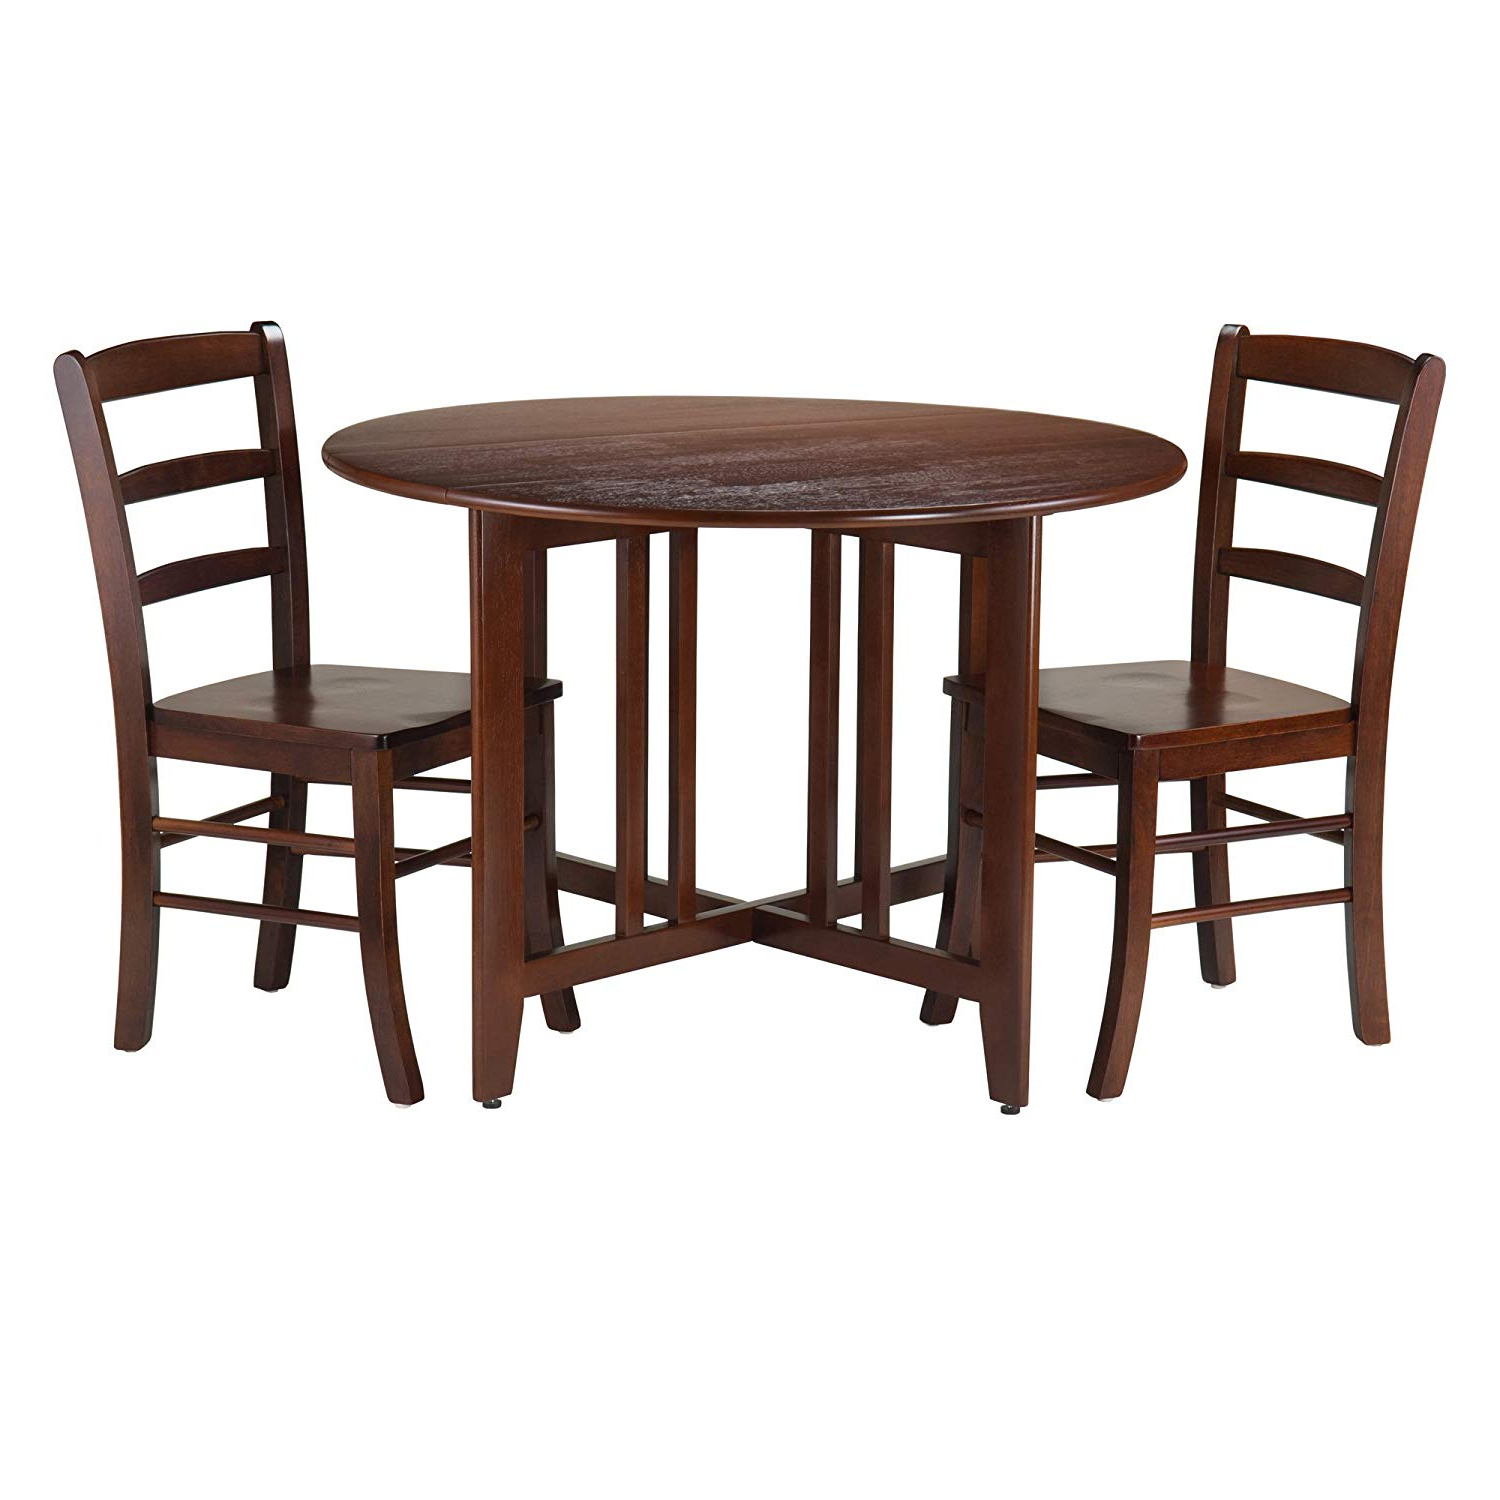 Winsome 3 Piece Alamo Round Drop Leaf Table With 2 Ladder Back Chairs, Brown With Regard To Widely Used Transitional Antique Walnut Drop Leaf Casual Dining Tables (View 19 of 25)